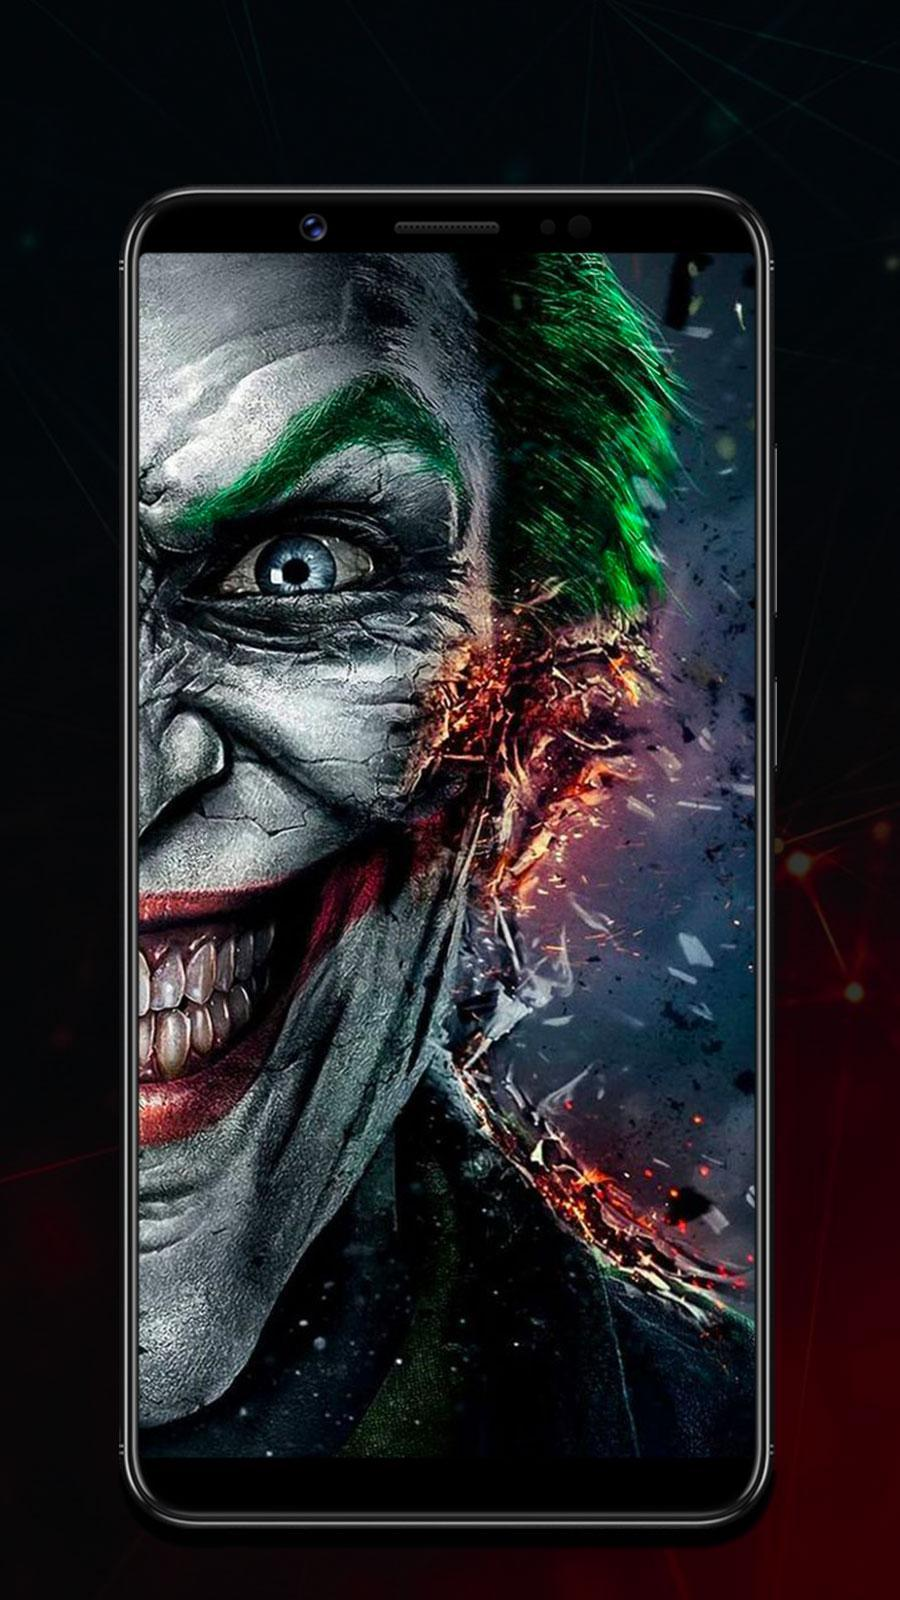 Joker Wallpaper Hd I 4k Background For Android Apk Download